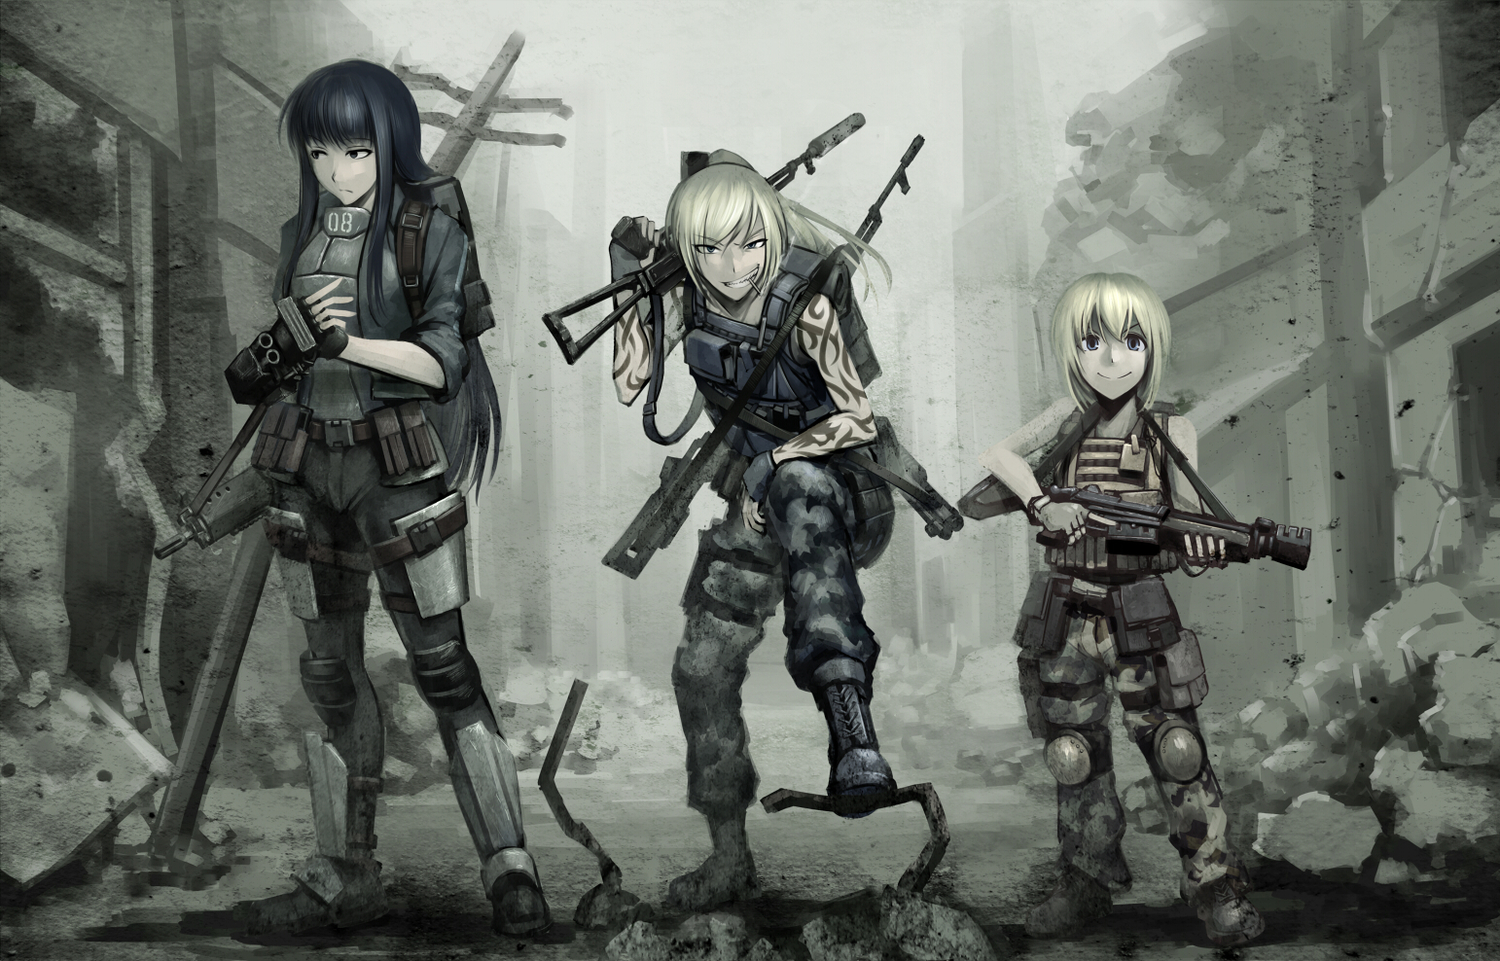 armor black_eyes blonde_hair blue_eyes boots fallout gloves gun hellshock long_hair ponytail ruins short_hair suzumi_(hellshock) tattoo weapon